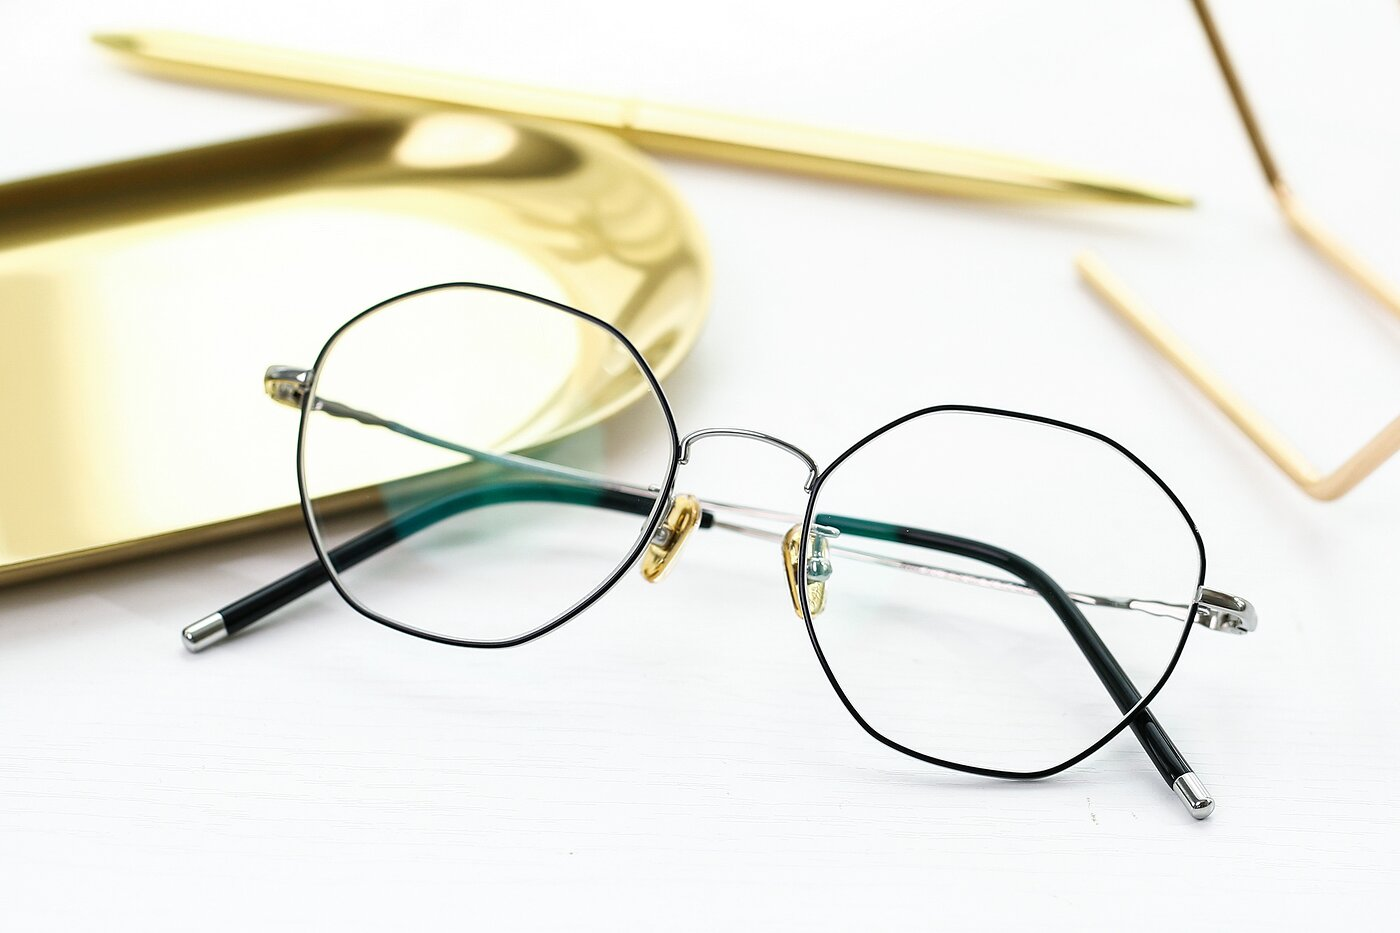 Black-Silver Narrow Titanium Geometric Eyeglasses